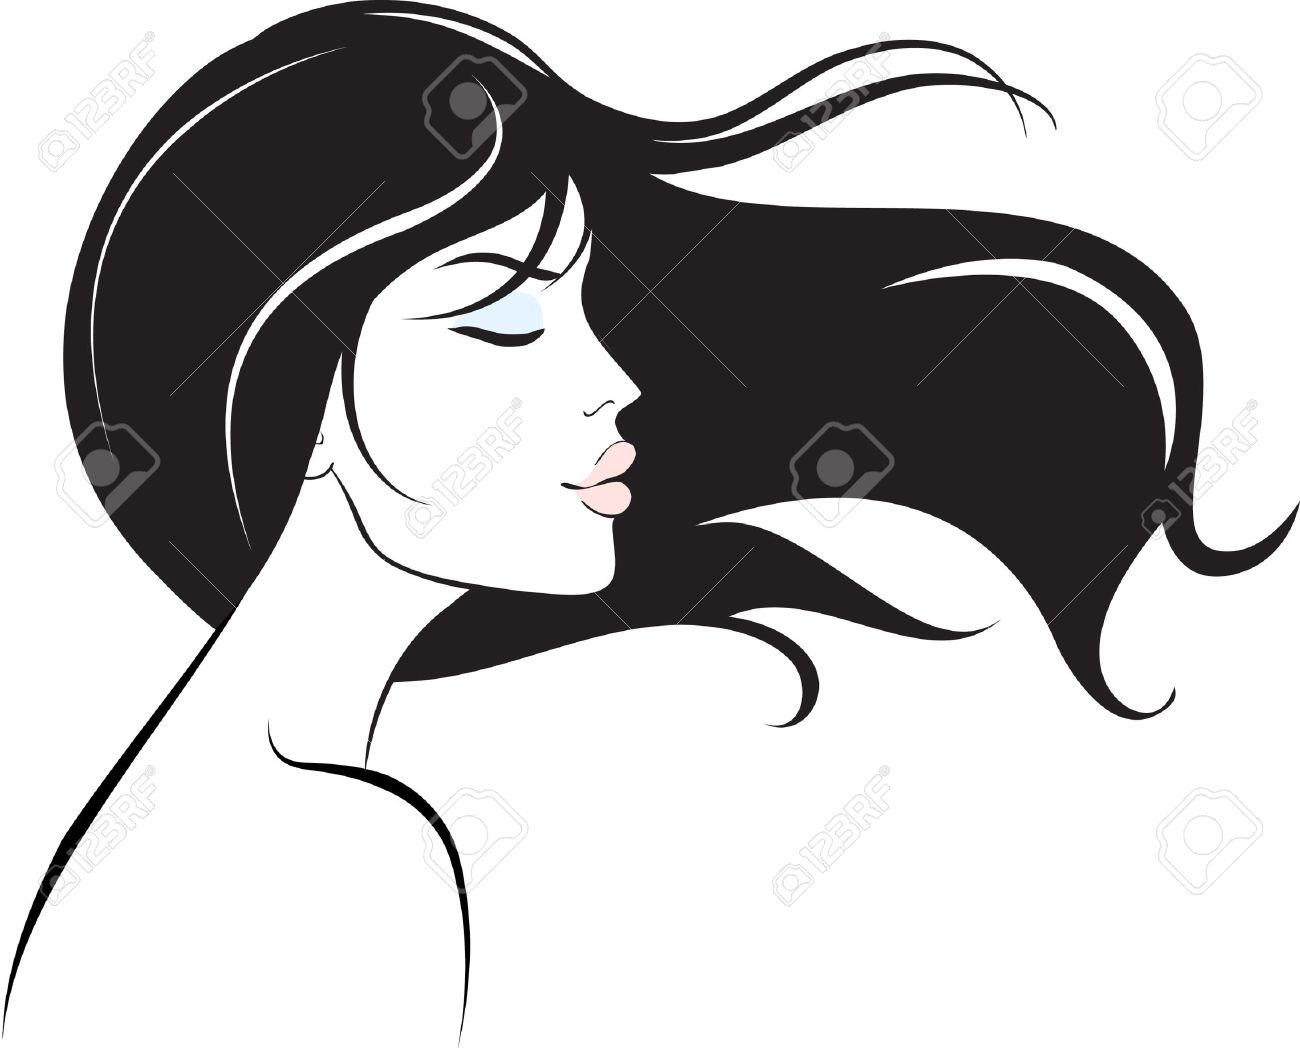 Woman Face Clipart Black And White woman face with long black